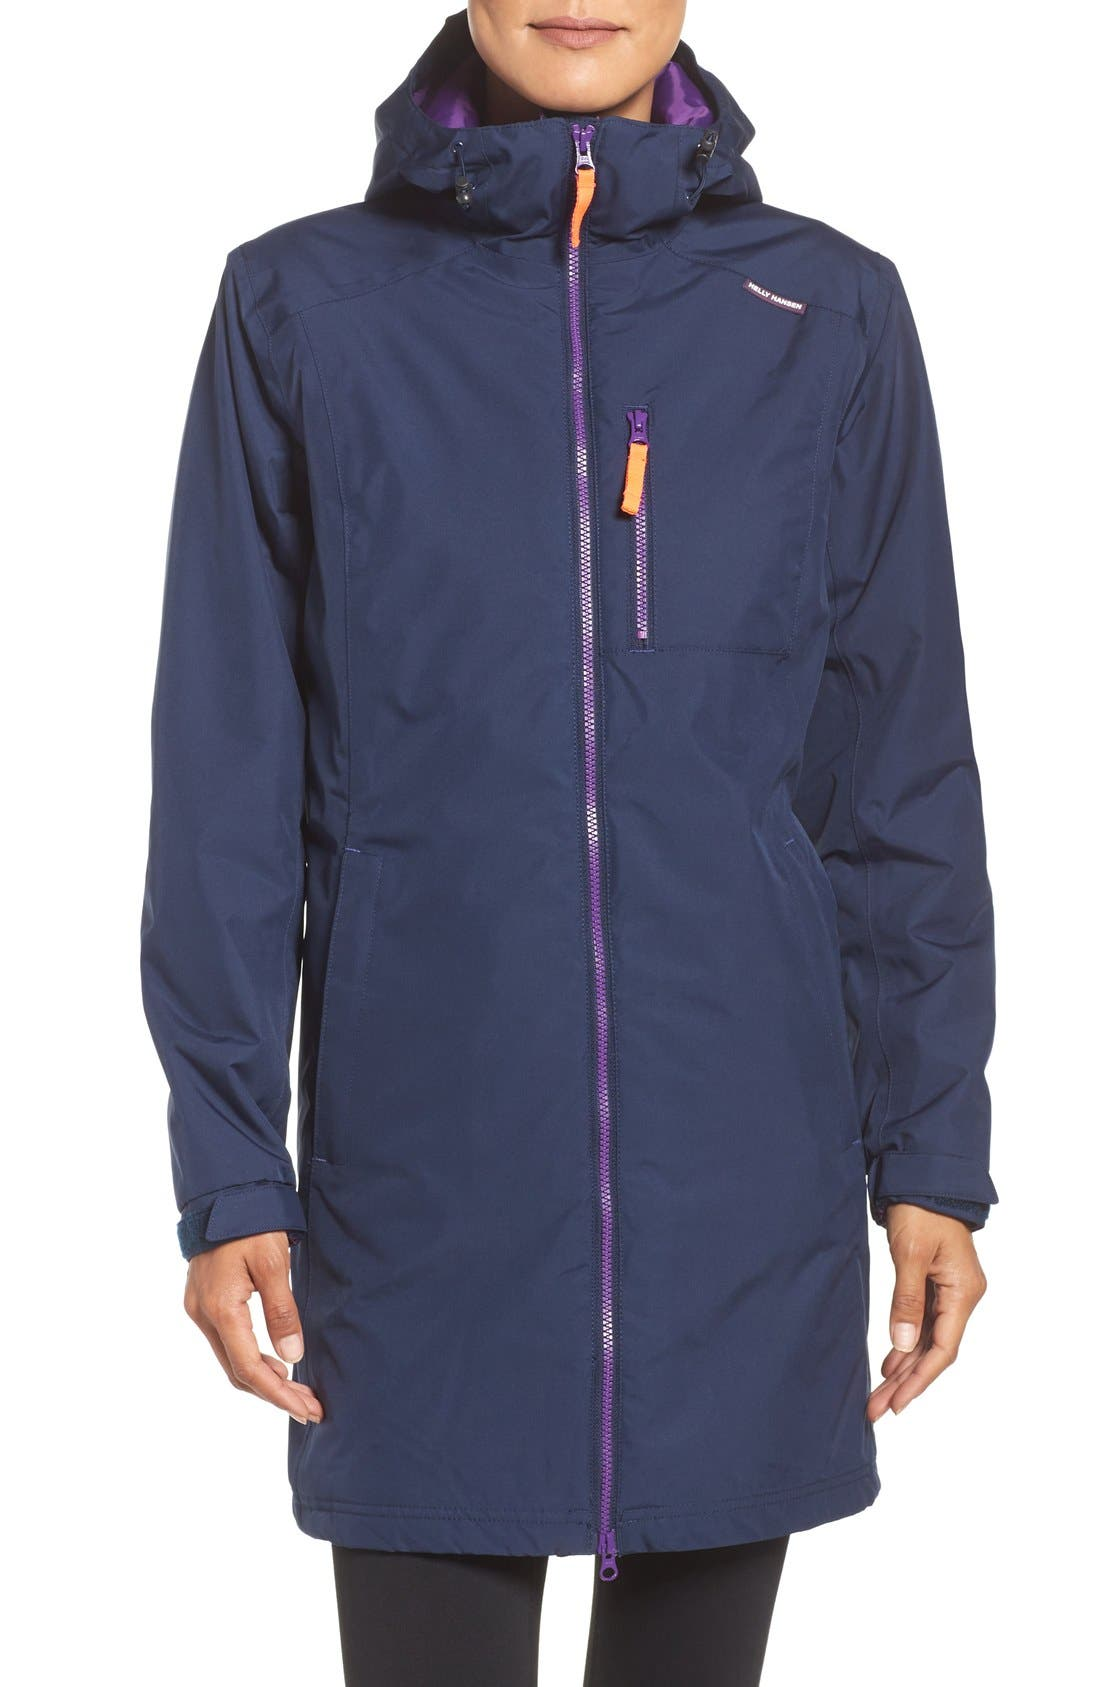 Helly Hansen 'Belfast' Long Waterproof Winter Rain Jacket